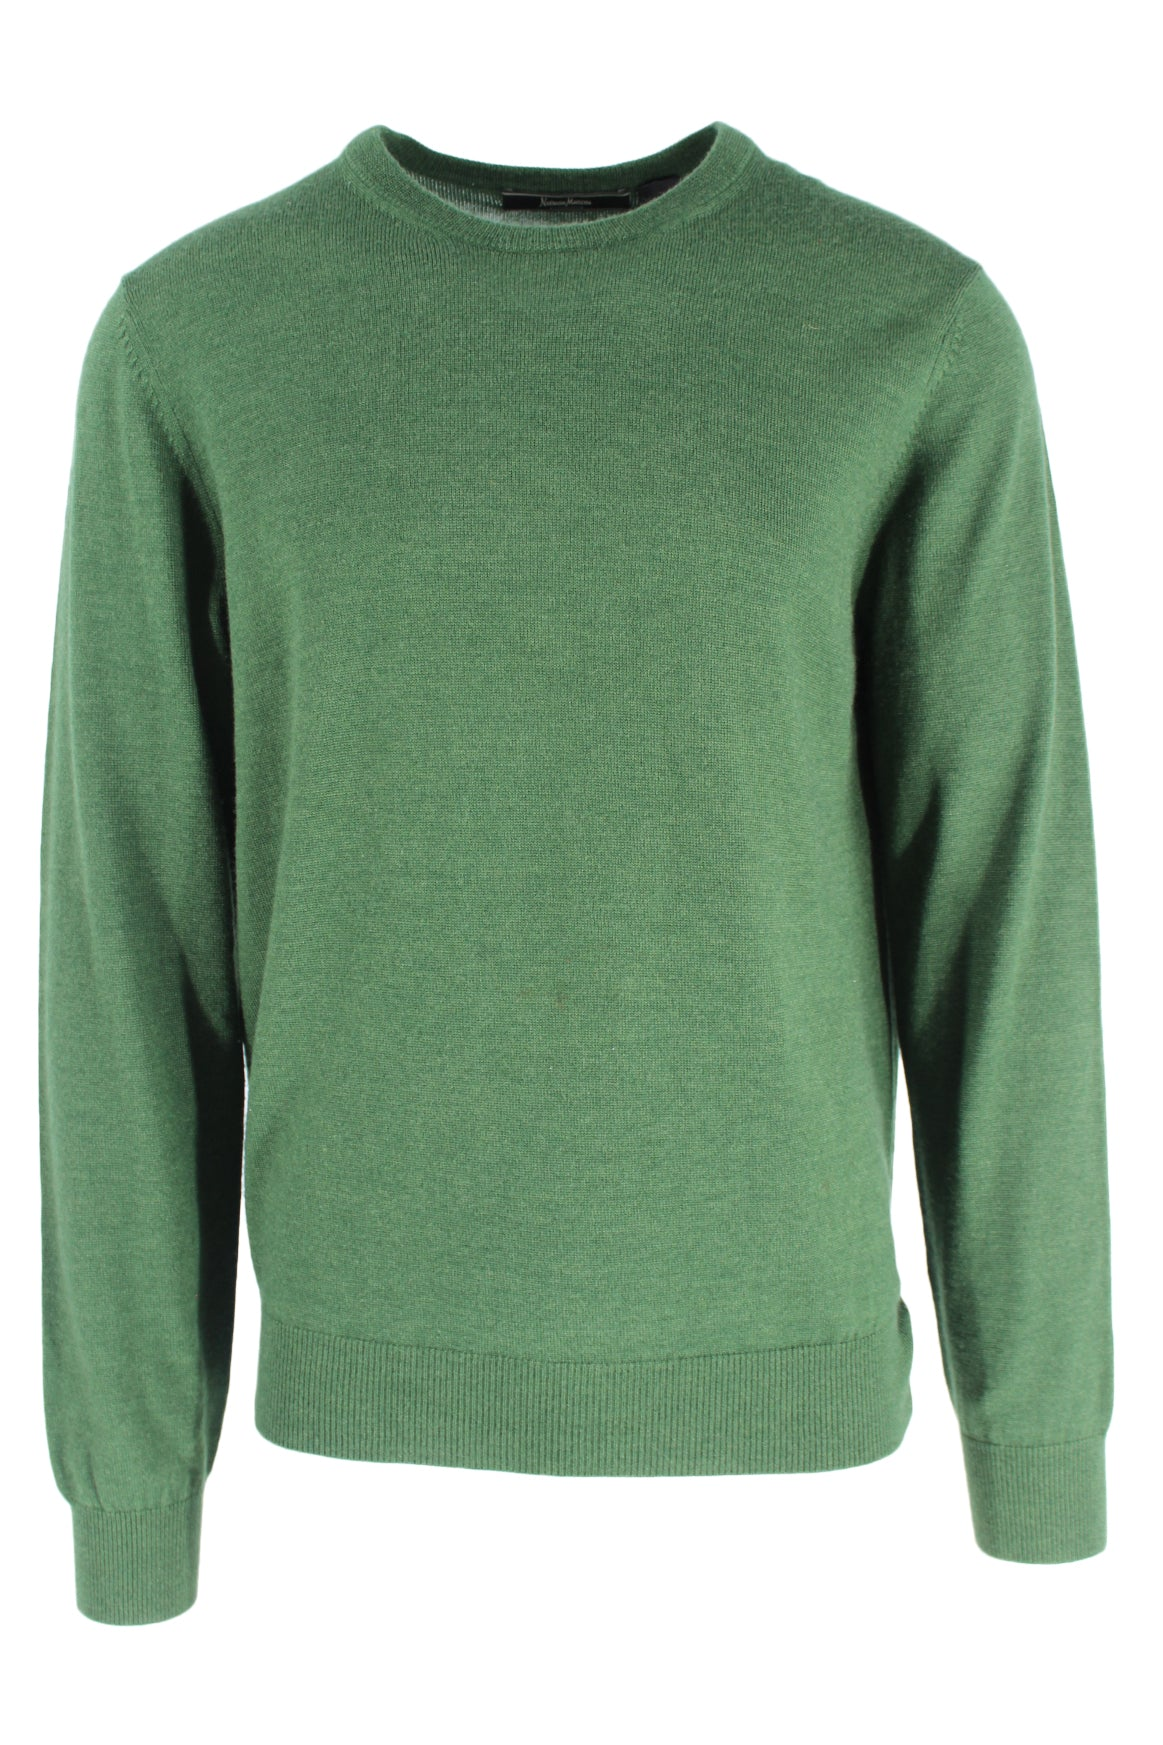 neiman marcus exclusive forest green long sleeve fine knit sweater. features a ribbed round neckline, sleeve cuffs, & hem.